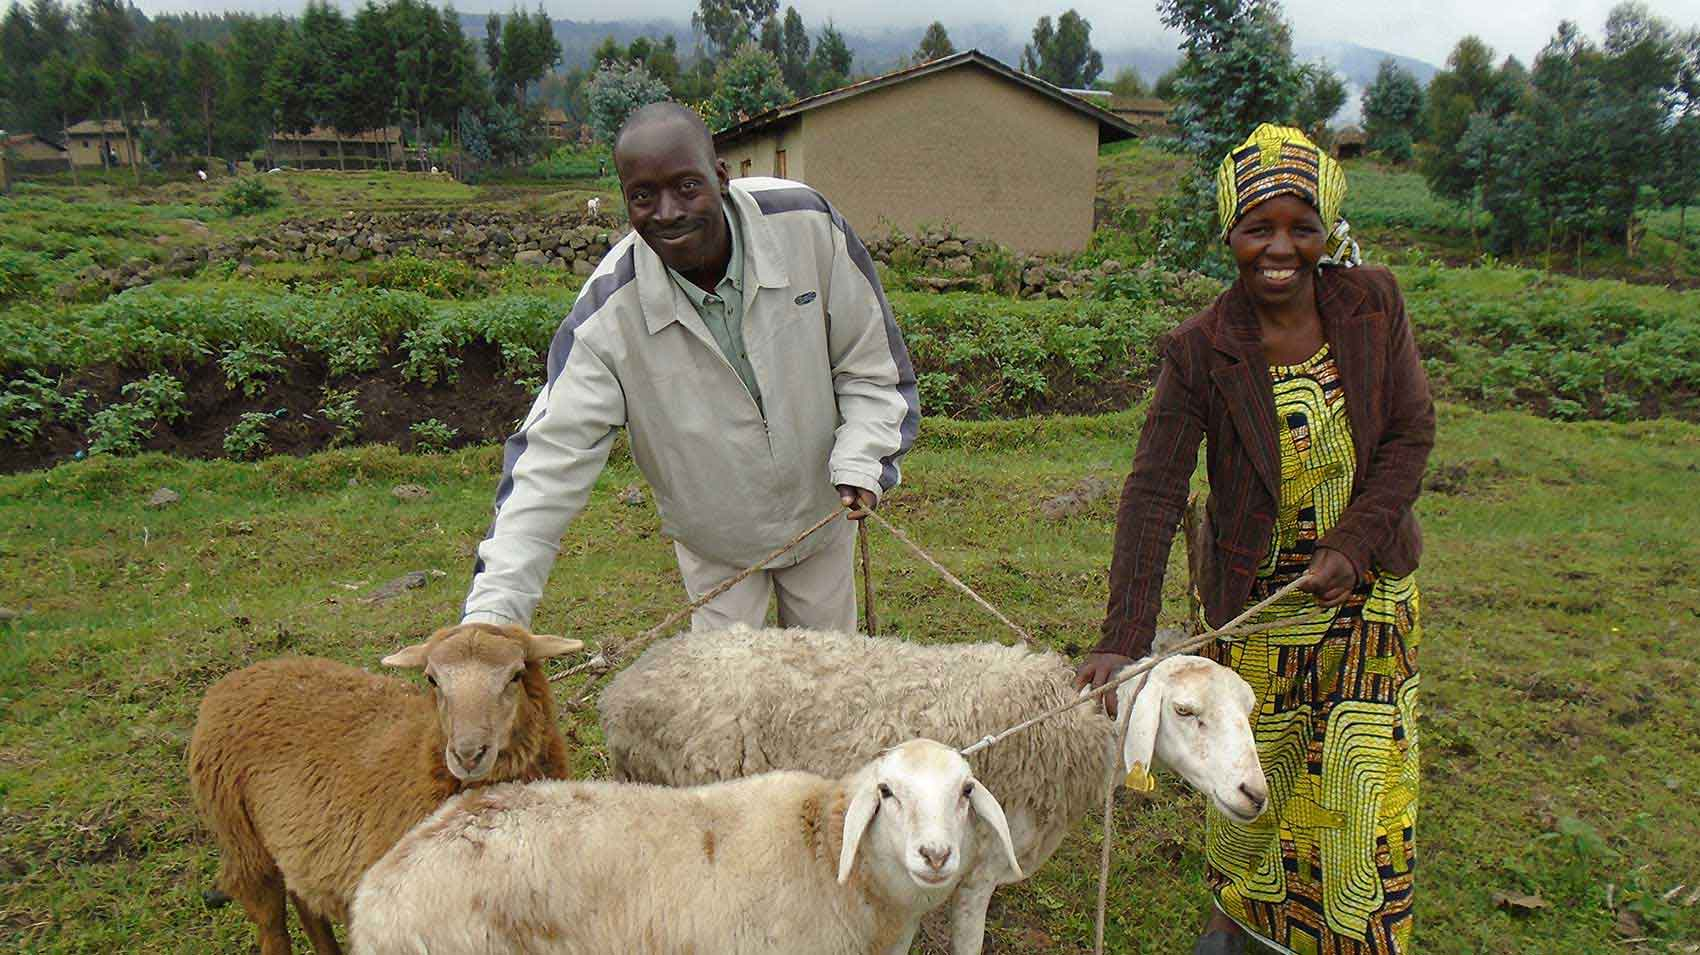 Maria Nyirambonizanye and her husband are among the farmers helped by the Rwanda Pyrethrum programme